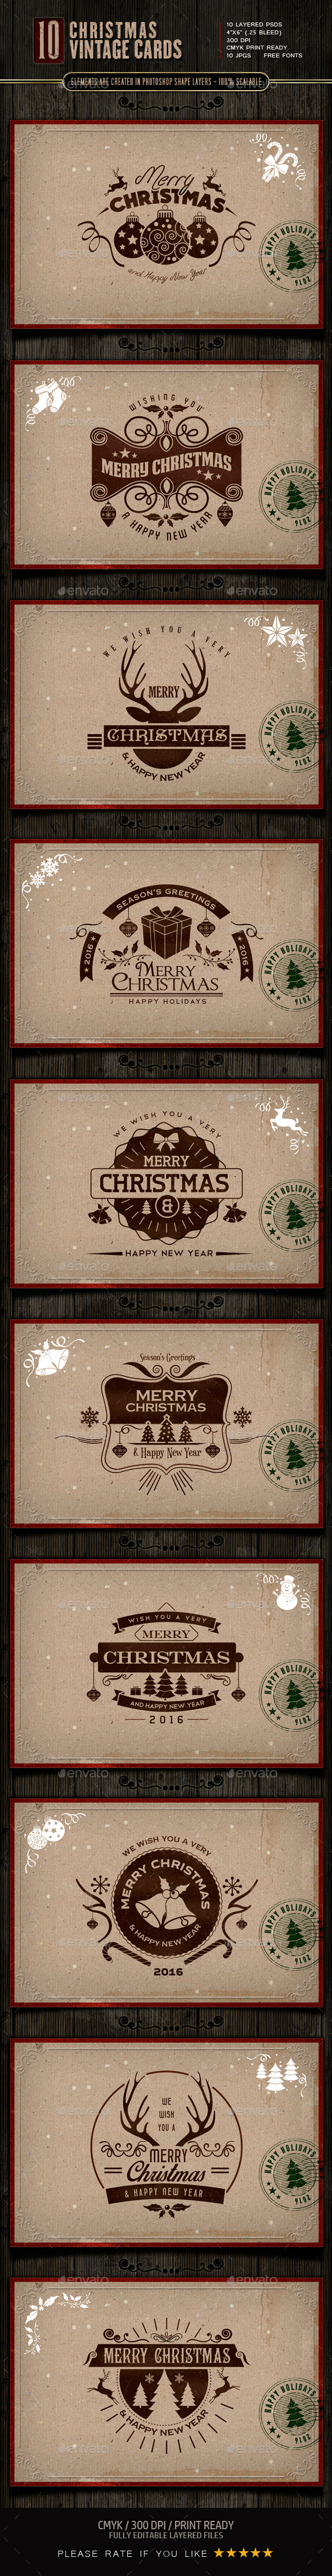 Retro / Vintage Christmas Cards